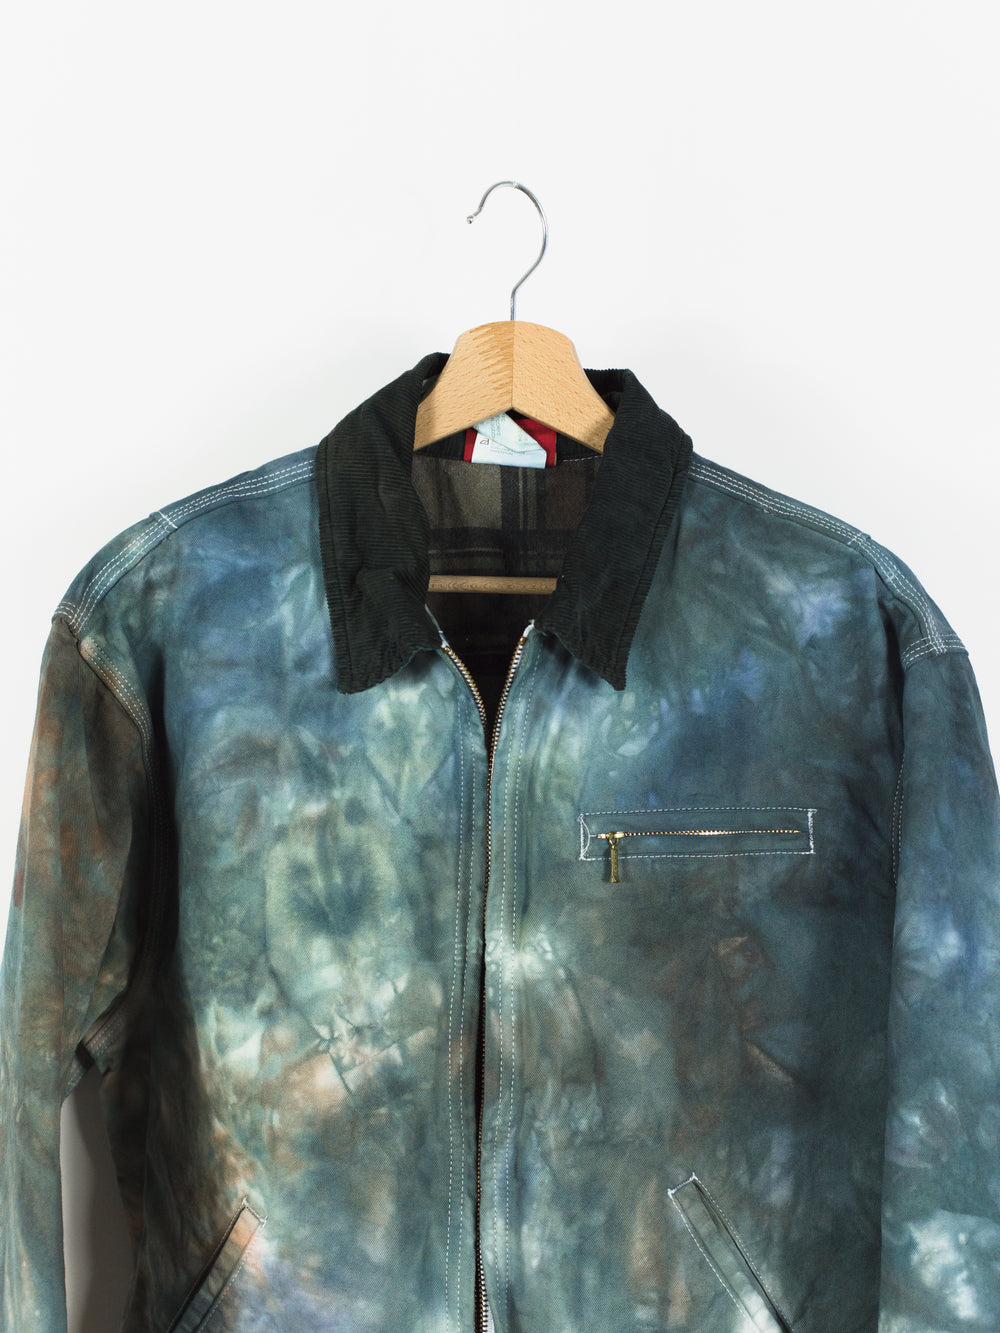 Eddie Yu Hand Dyed Dickies Painter's Jacket